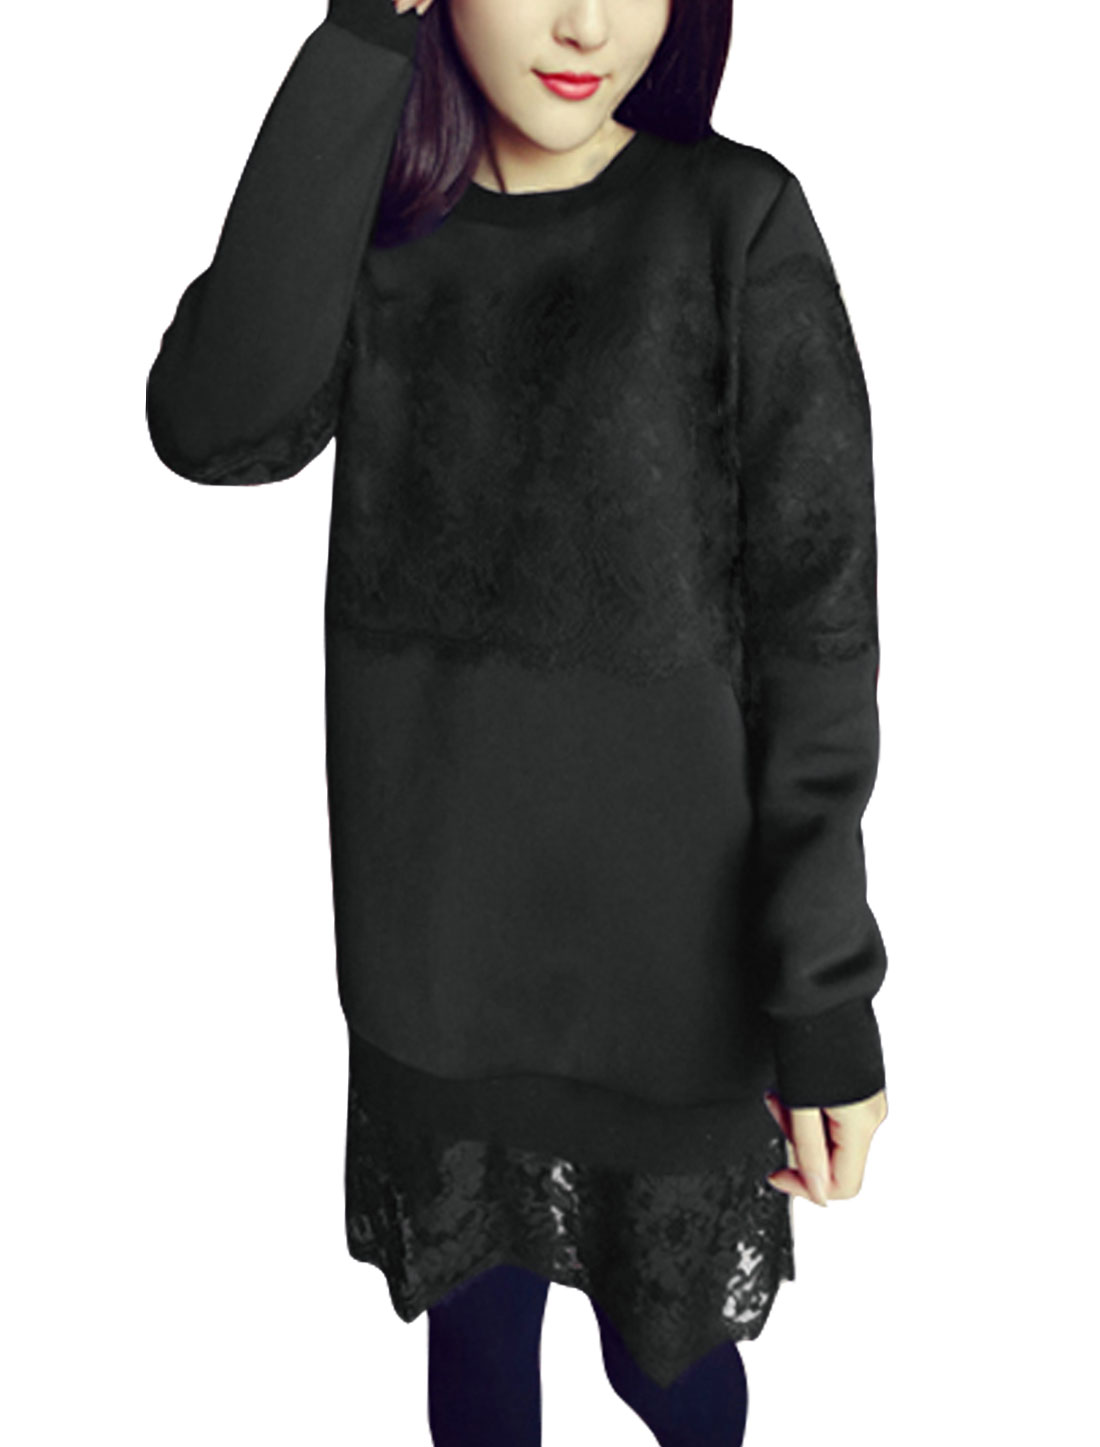 Ladies Soft Lining Flower Lace Tunic Sweatshirt Black S